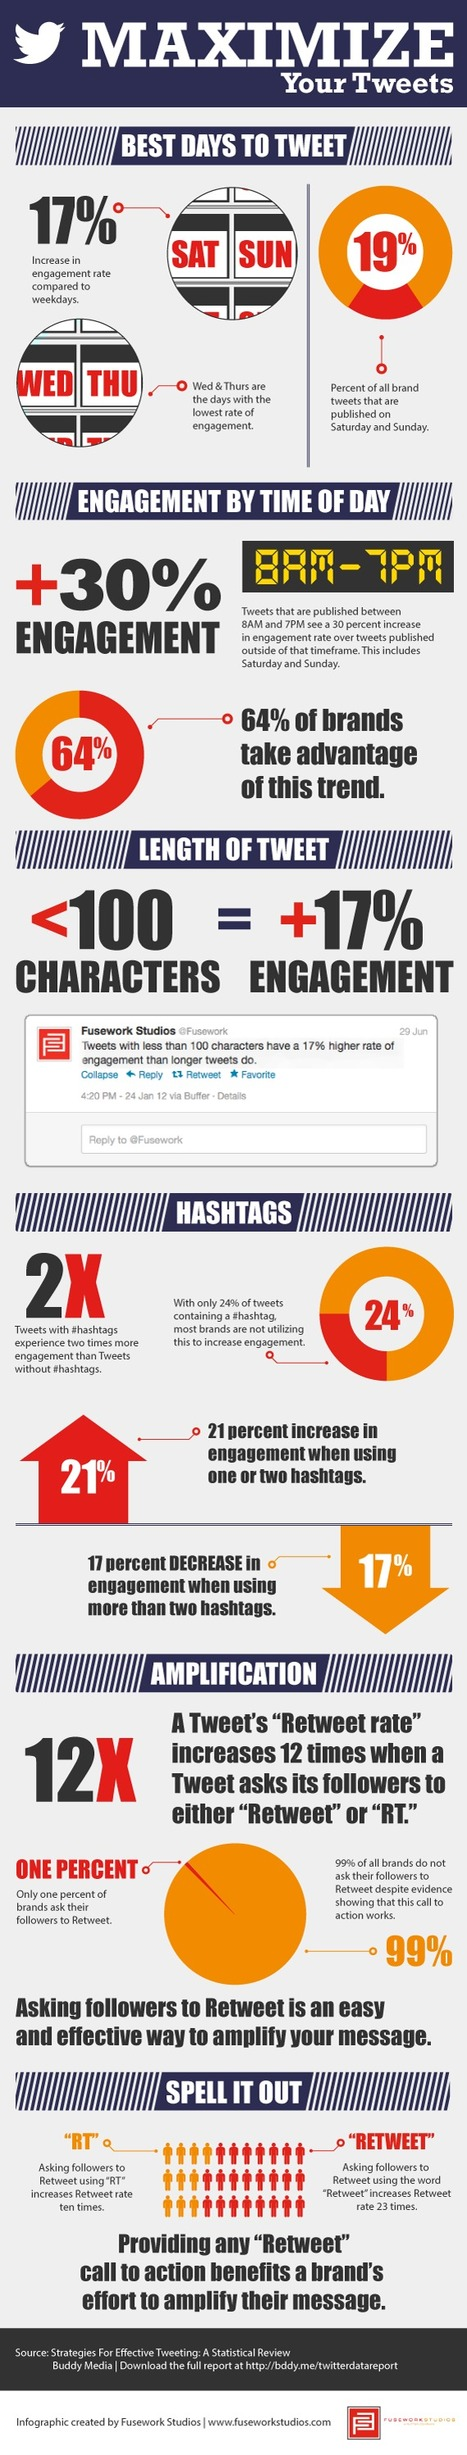 Maximize and Optimize your Tweets on Twitter #infographic | WordPress Google SEO and Social Media | Scoop.it